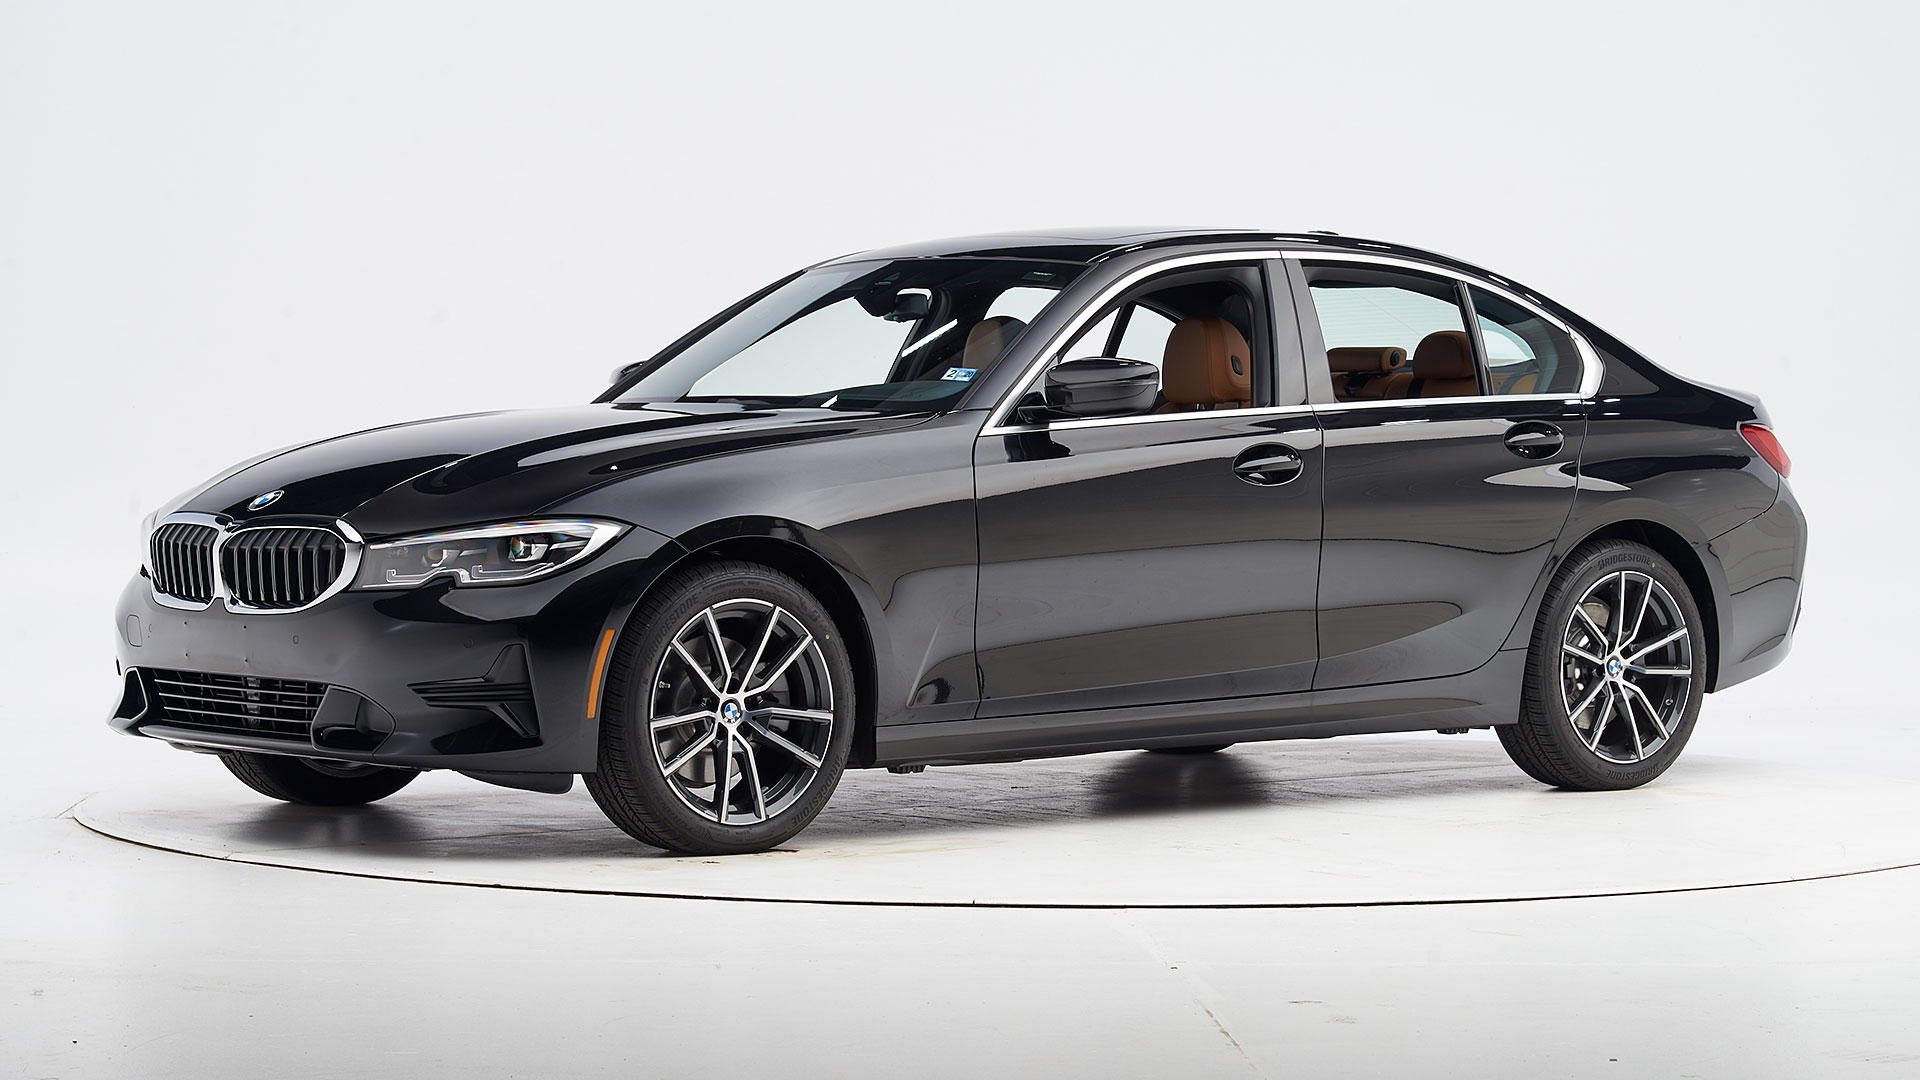 2019 BMW 3 series 4-door sedan